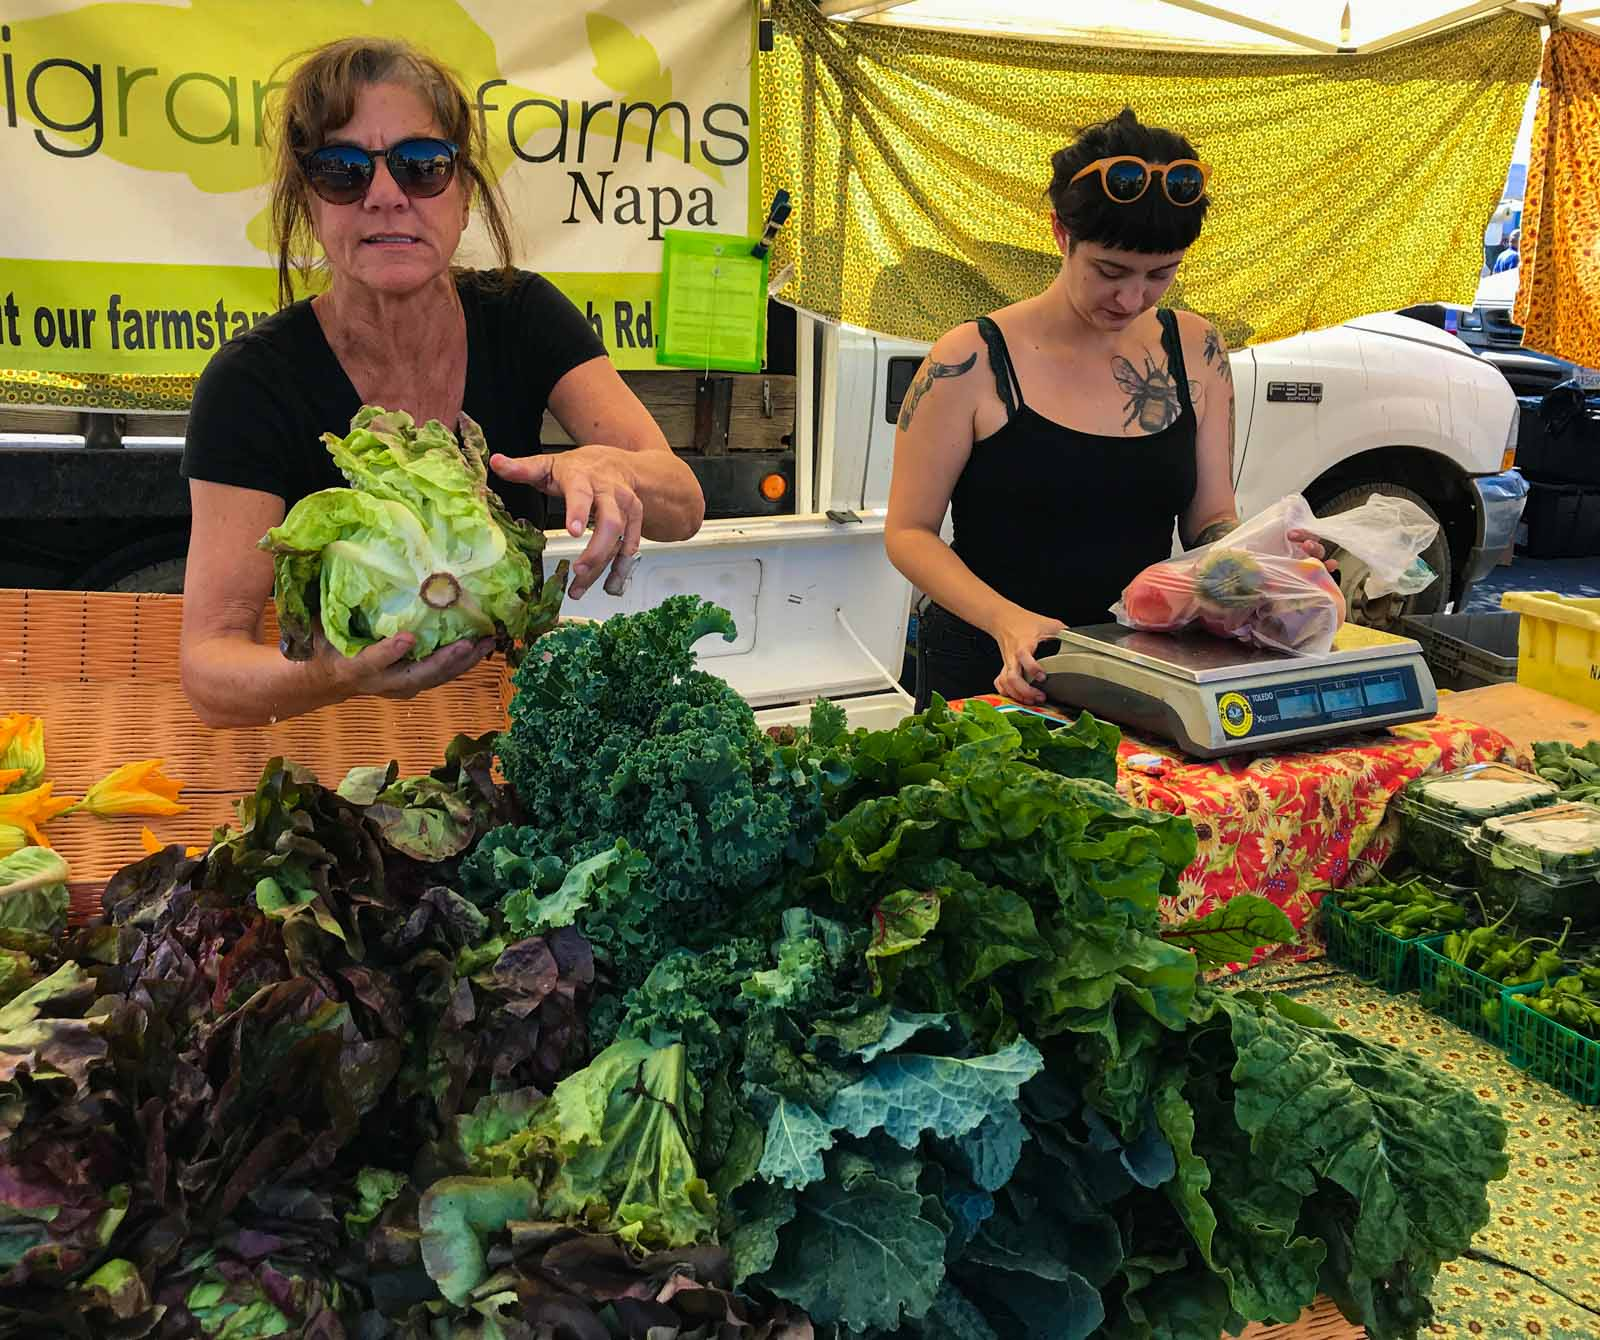 At the Farmers Market